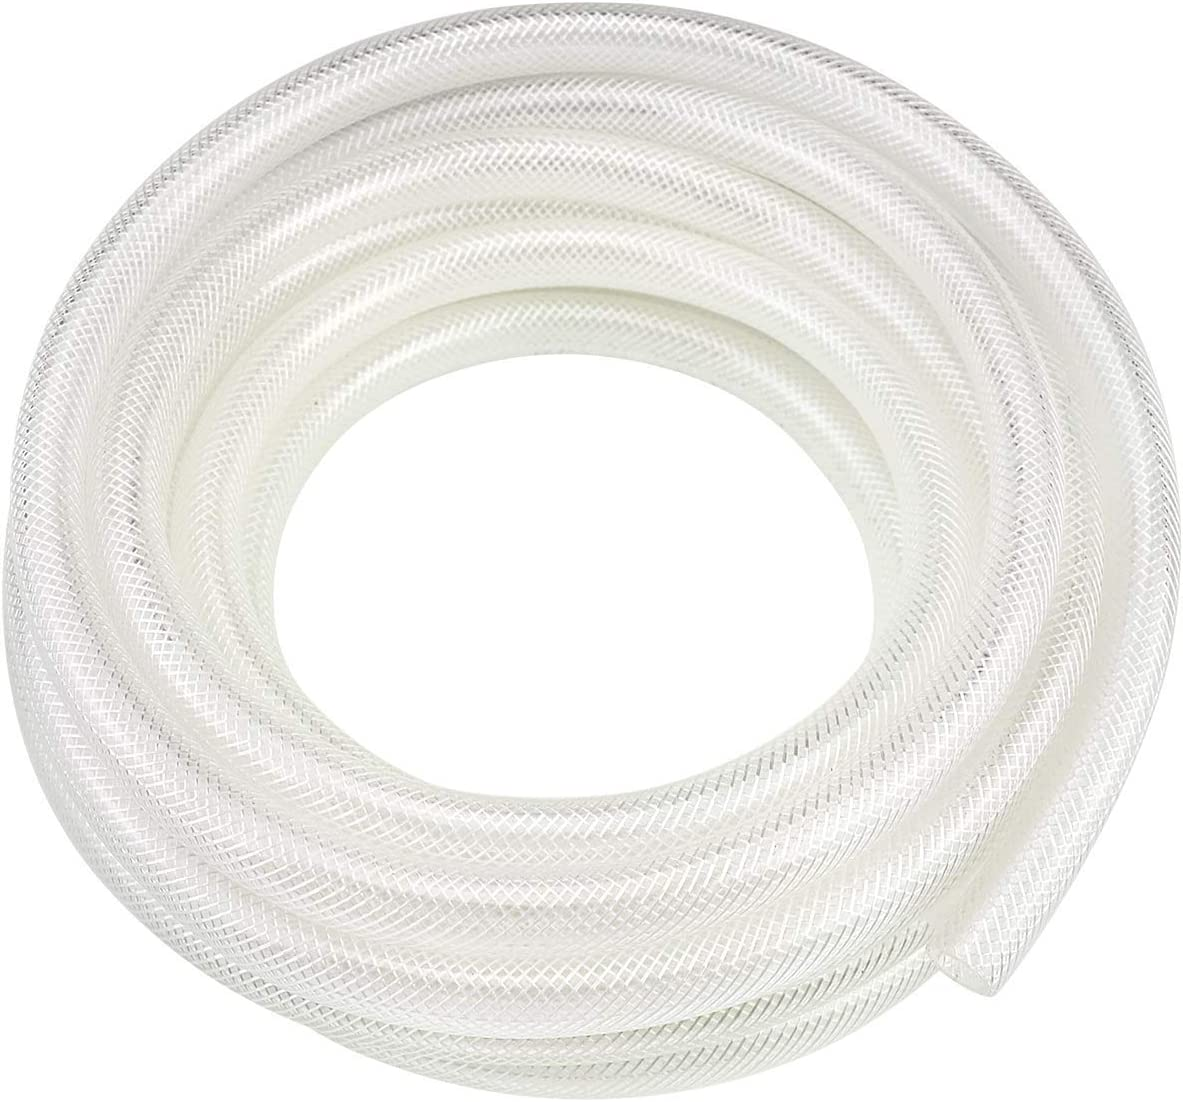 "3/4"" ID x 10 Ft High Pressure Braided Clear PVC Vinyl Tubing Flexible Vinyl Tube, Heavy Duty Reinforced Vinyl Hose Tubing, BPA Free and Non Toxic"